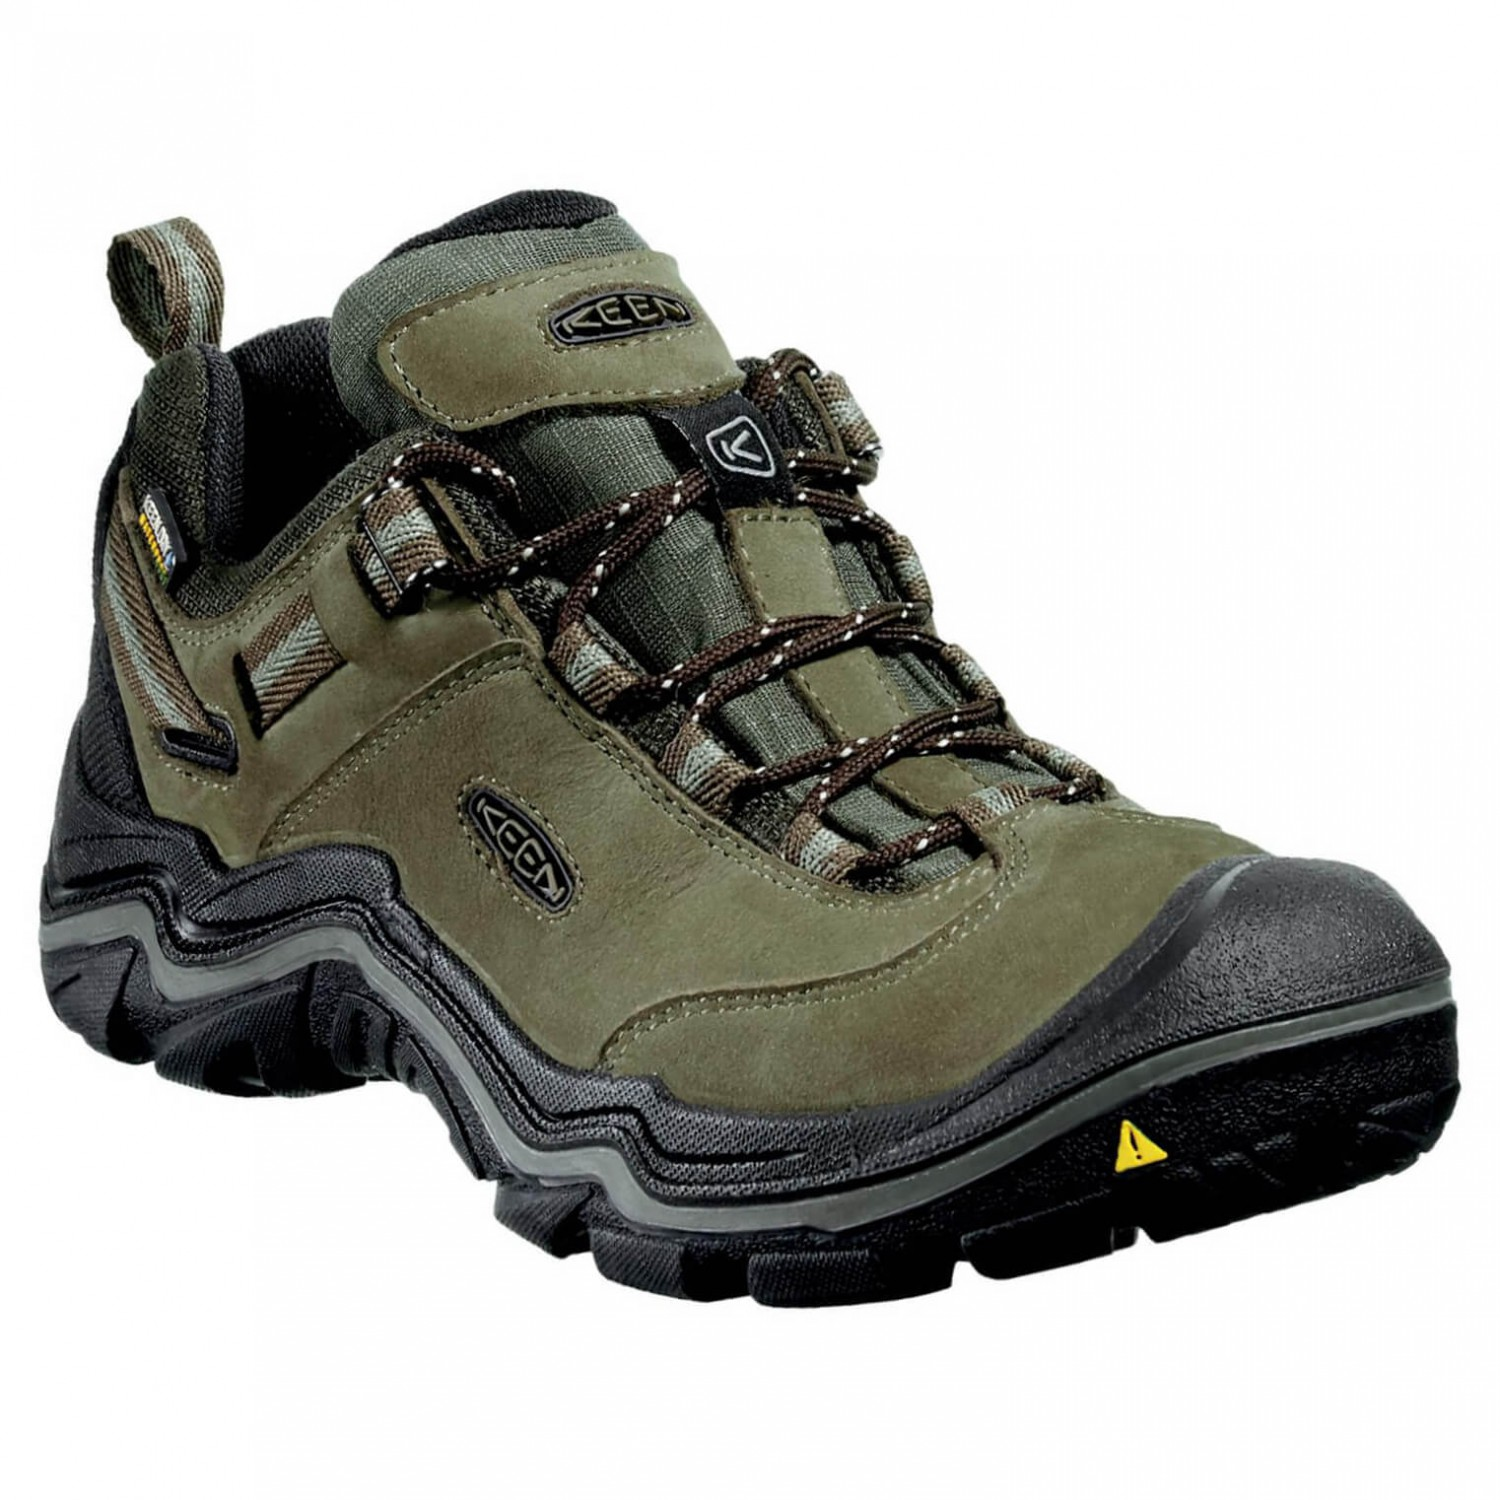 Keen - Women's Wanderer WP - Multisportschuhe Chilli Pepper / Gargoyle